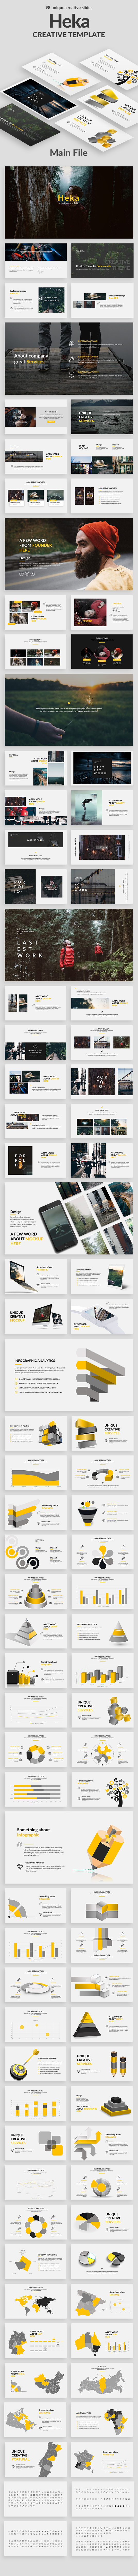 Heka Creative Keynote Template - Creative Keynote Templates